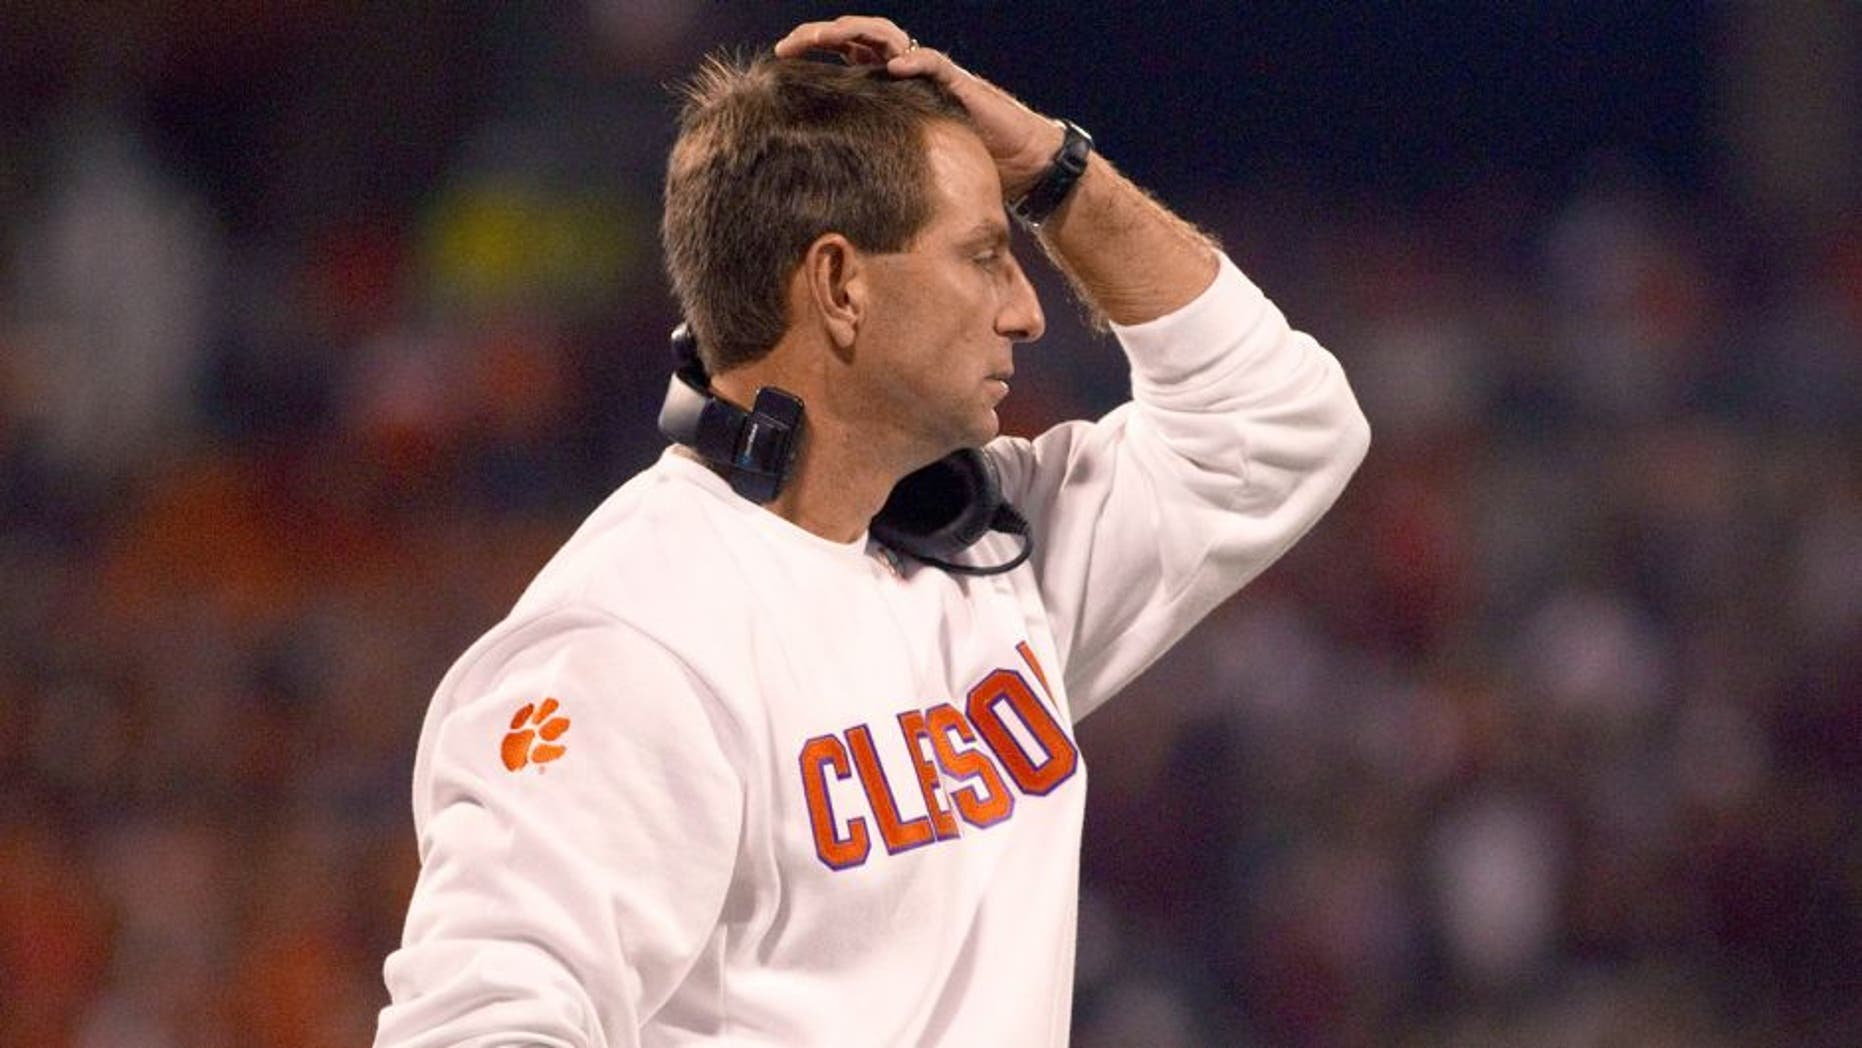 Oct 19, 2013; Clemson, SC, USA; Clemson Tigers head coach Dabo Swinney reacts after the play during the first half against the Florida State Seminoles at Clemson Memorial Stadium. Mandatory Credit: Joshua S. Kelly-USA TODAY Sports